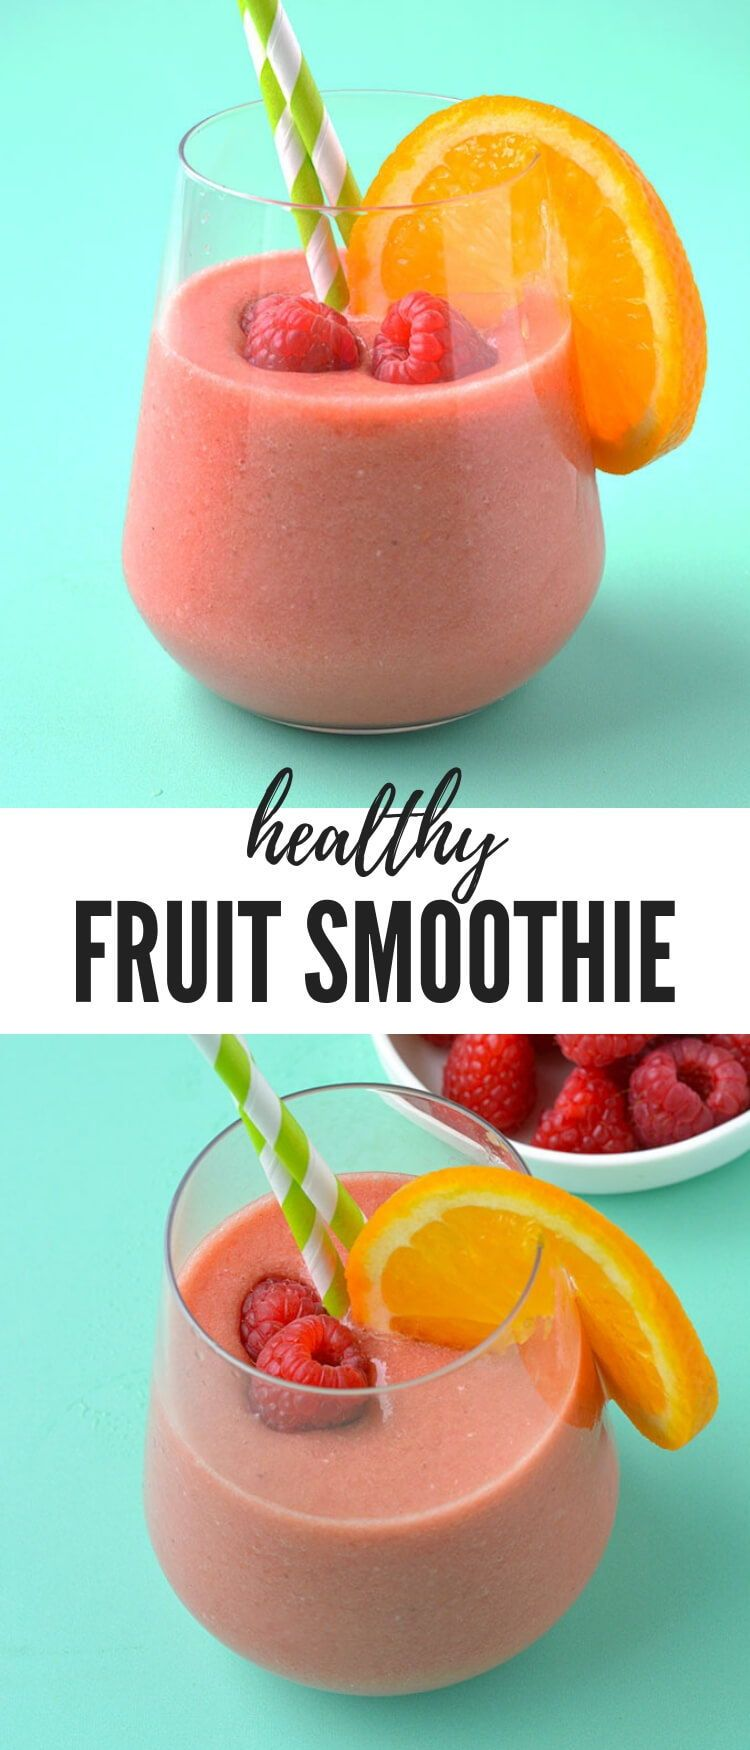 My Favourite Fruit Smoothie #fruitsmoothie